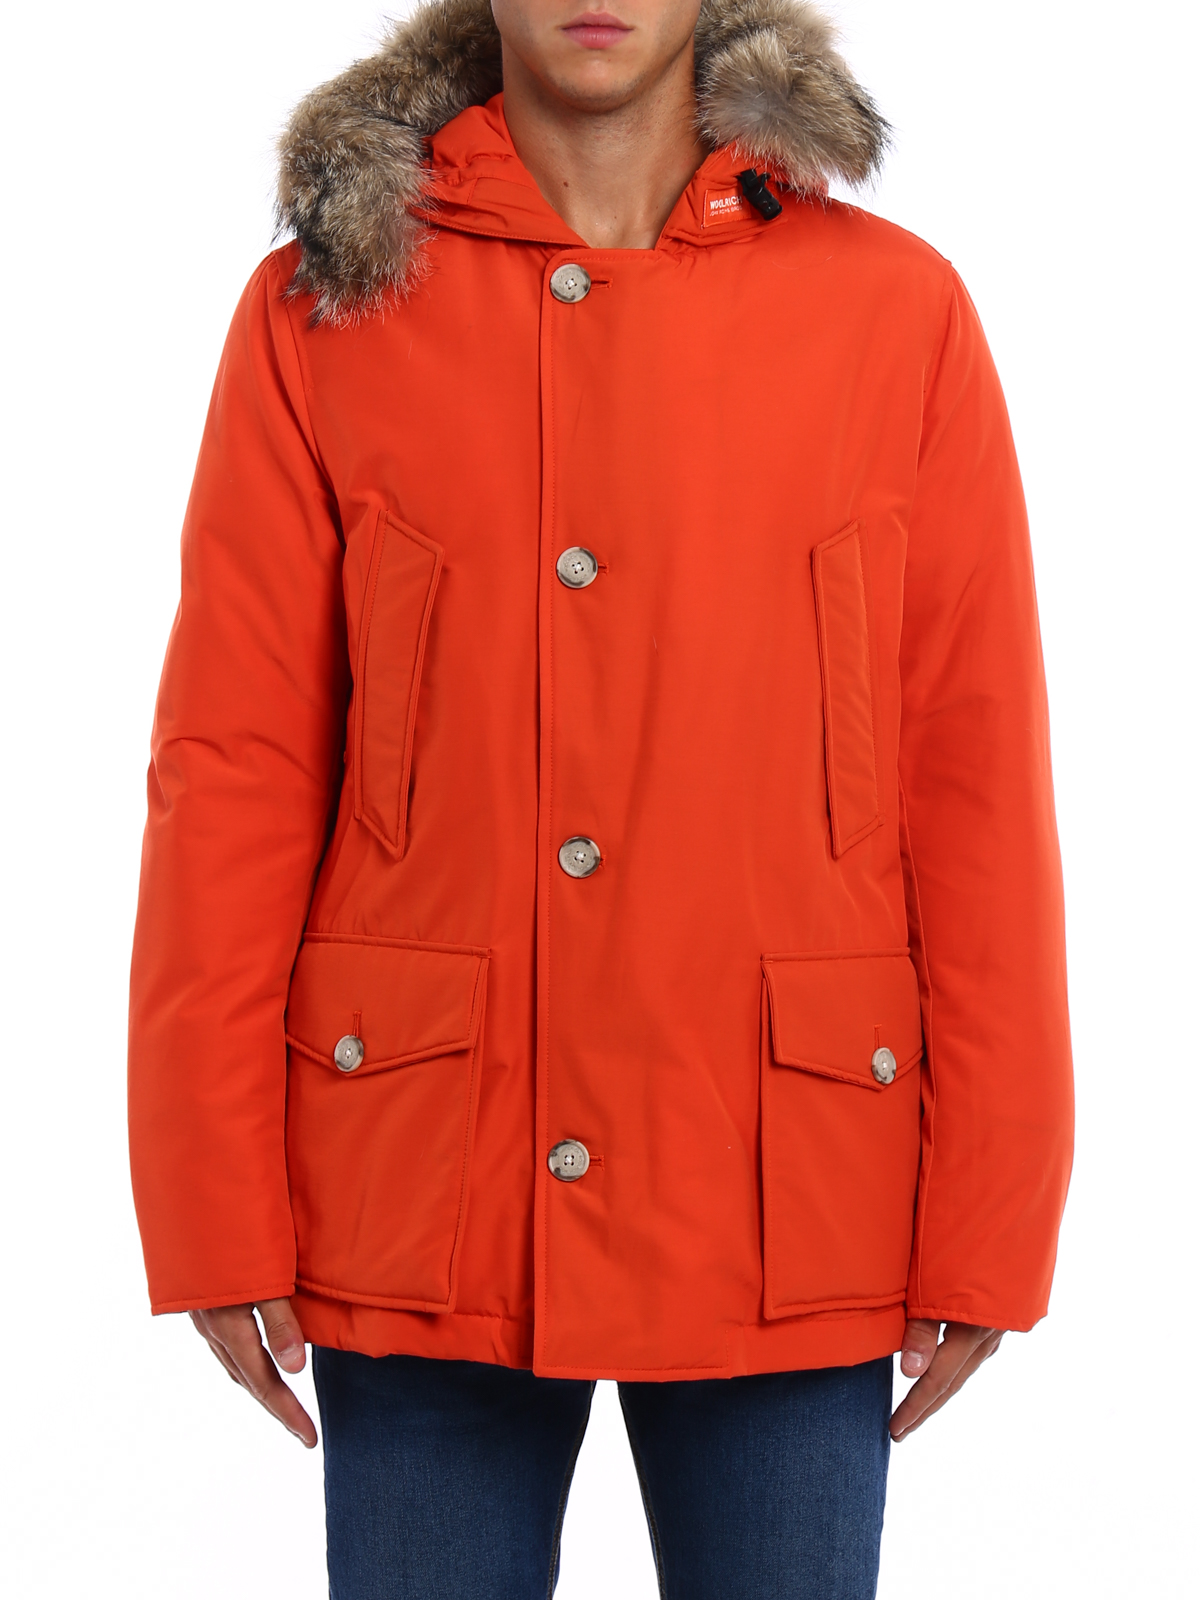 low priced d3917 80bb1 Woolrich - Parka - Orange - Parkas - WOCPS2586CN03TRO ...